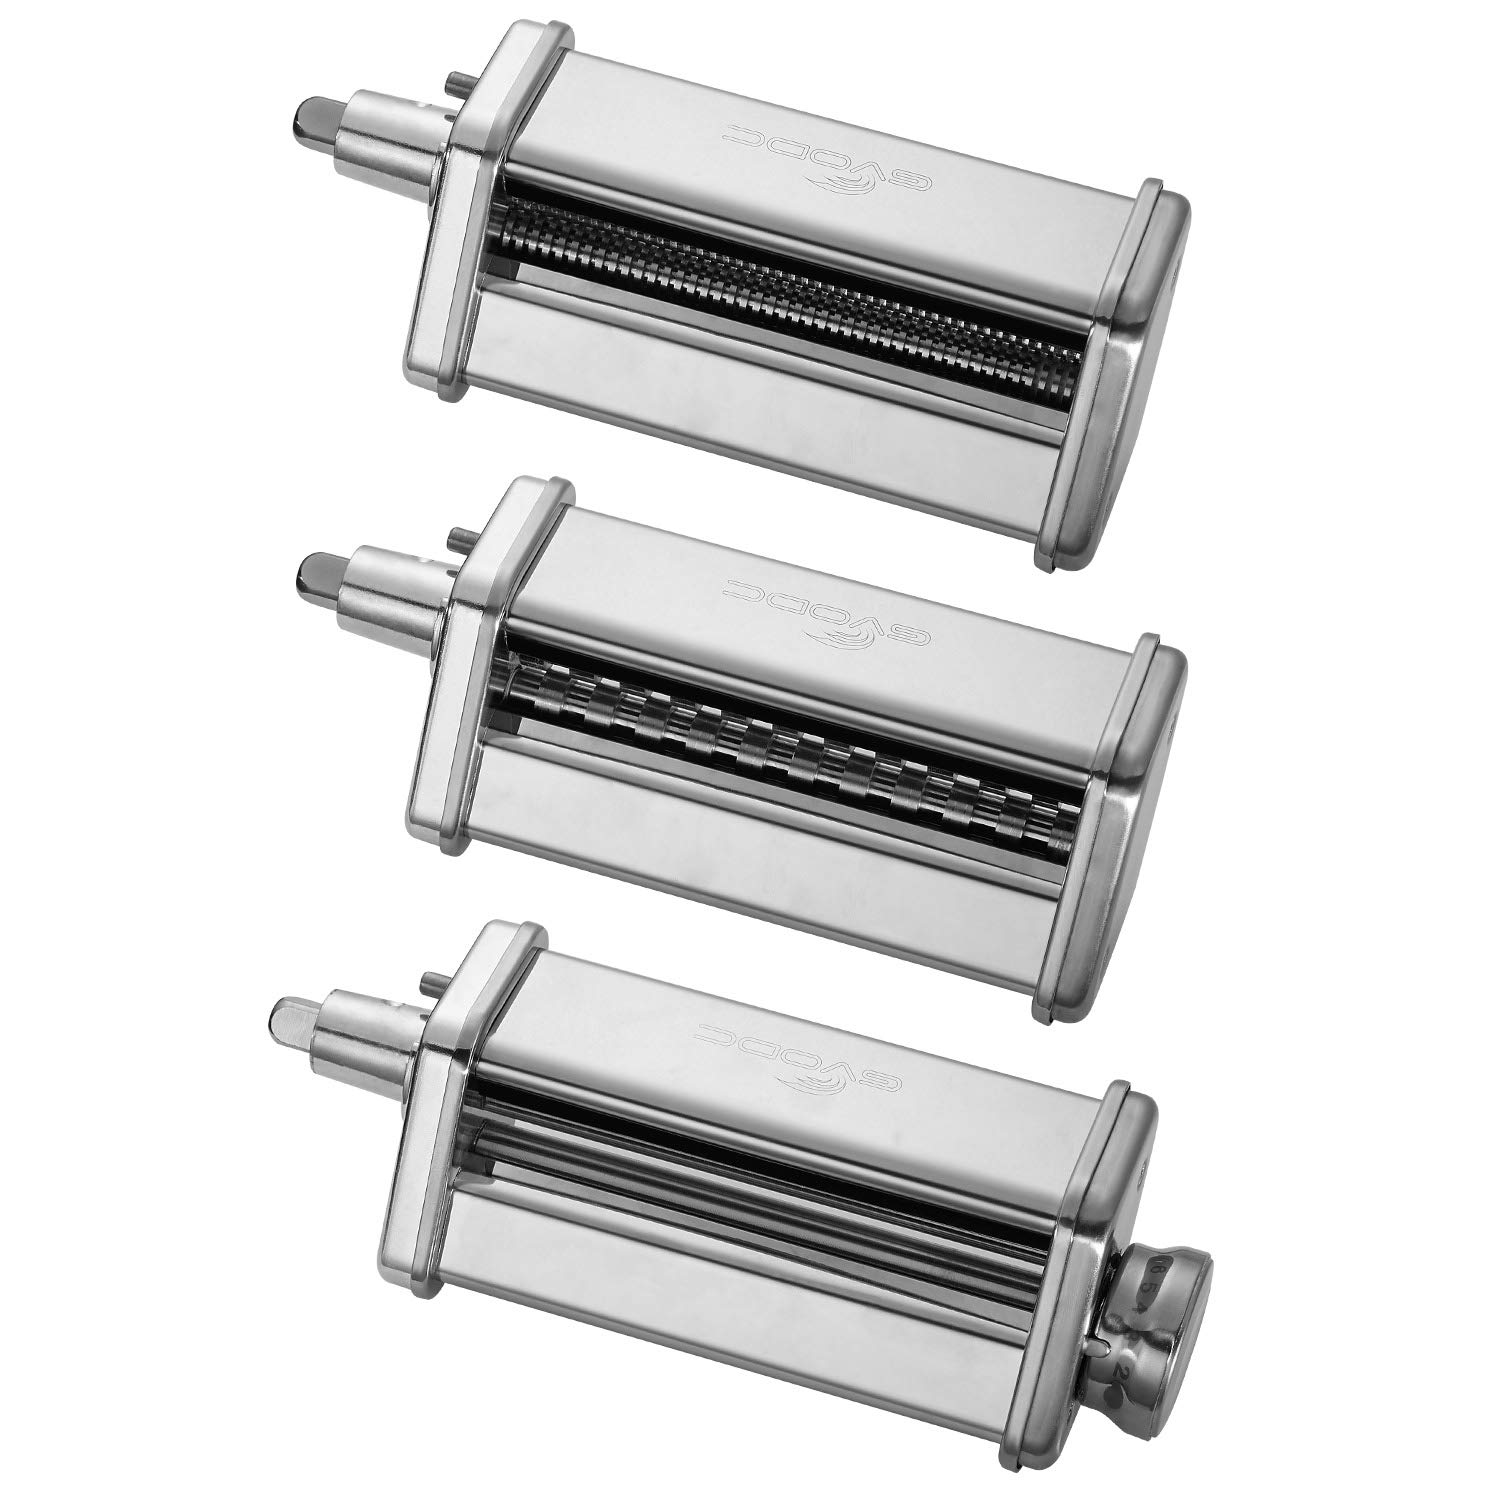 3-Piece Pasta Roller/Cutter Set Attachment fits KitchenAid Stand Mixers,Stainless Steel,Mixer Accessory by Gvode by GVODE